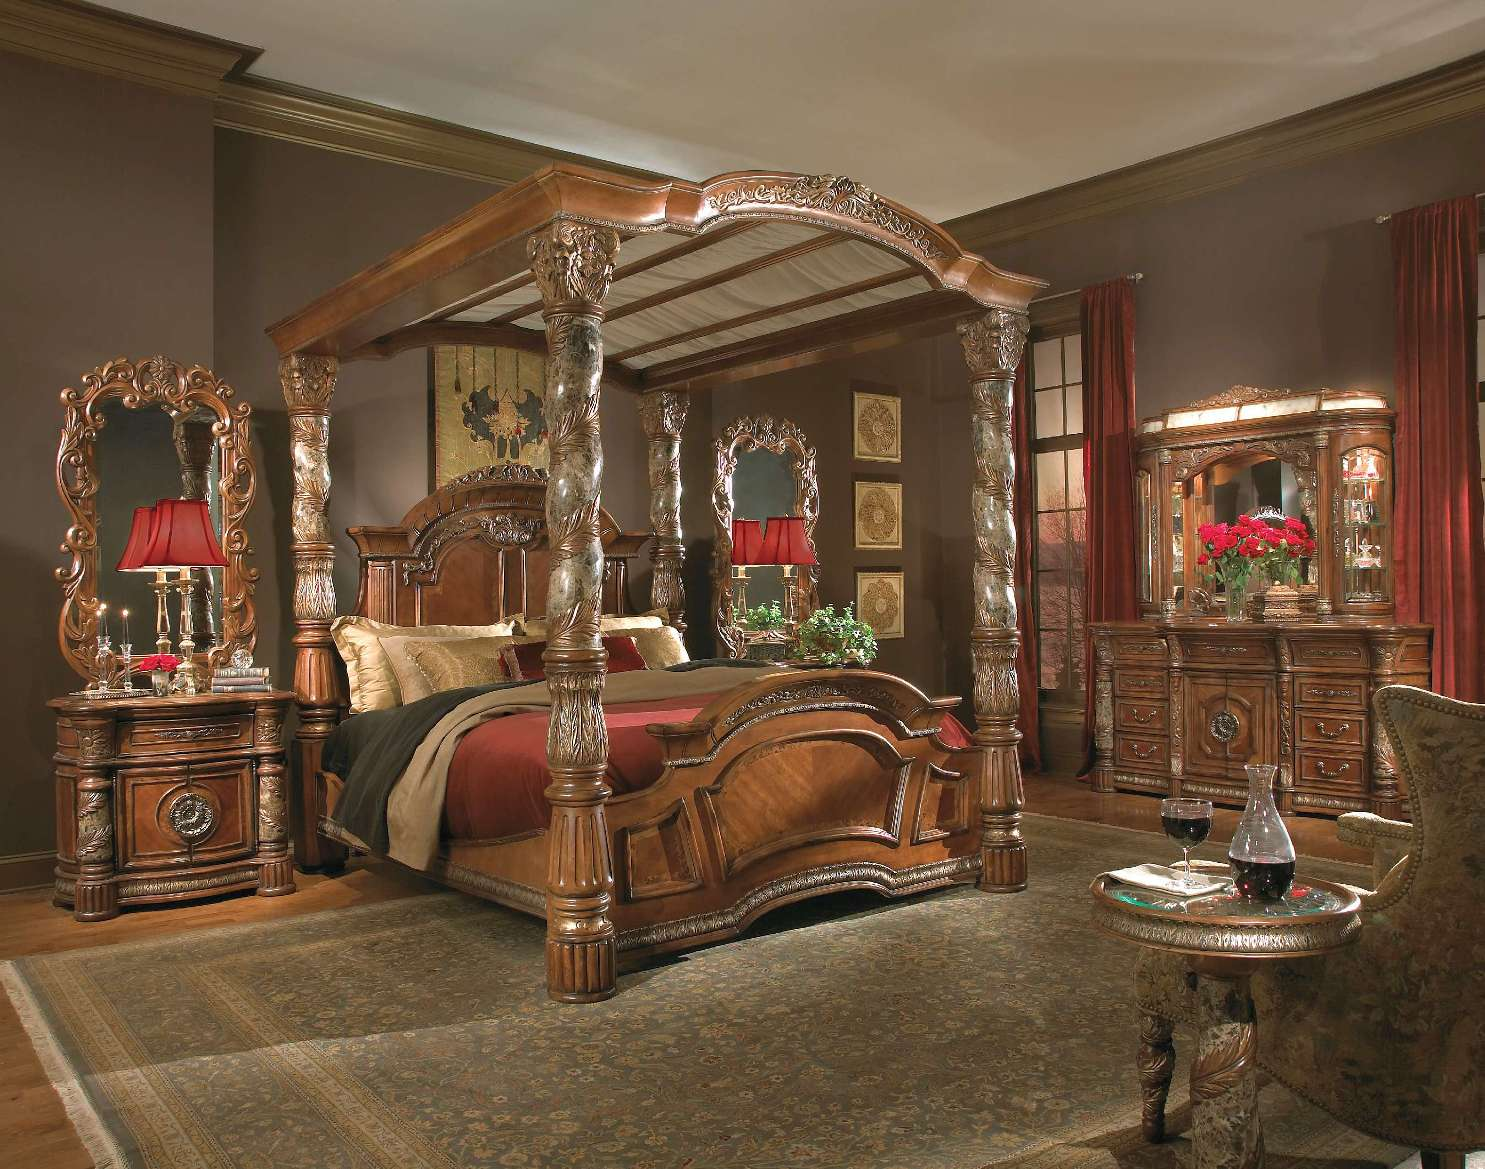 Valencia Carved Wood Traditional Bedroom Furniture Set 209000: Michael Amini Villa Valencia Traditional Luxury Poster